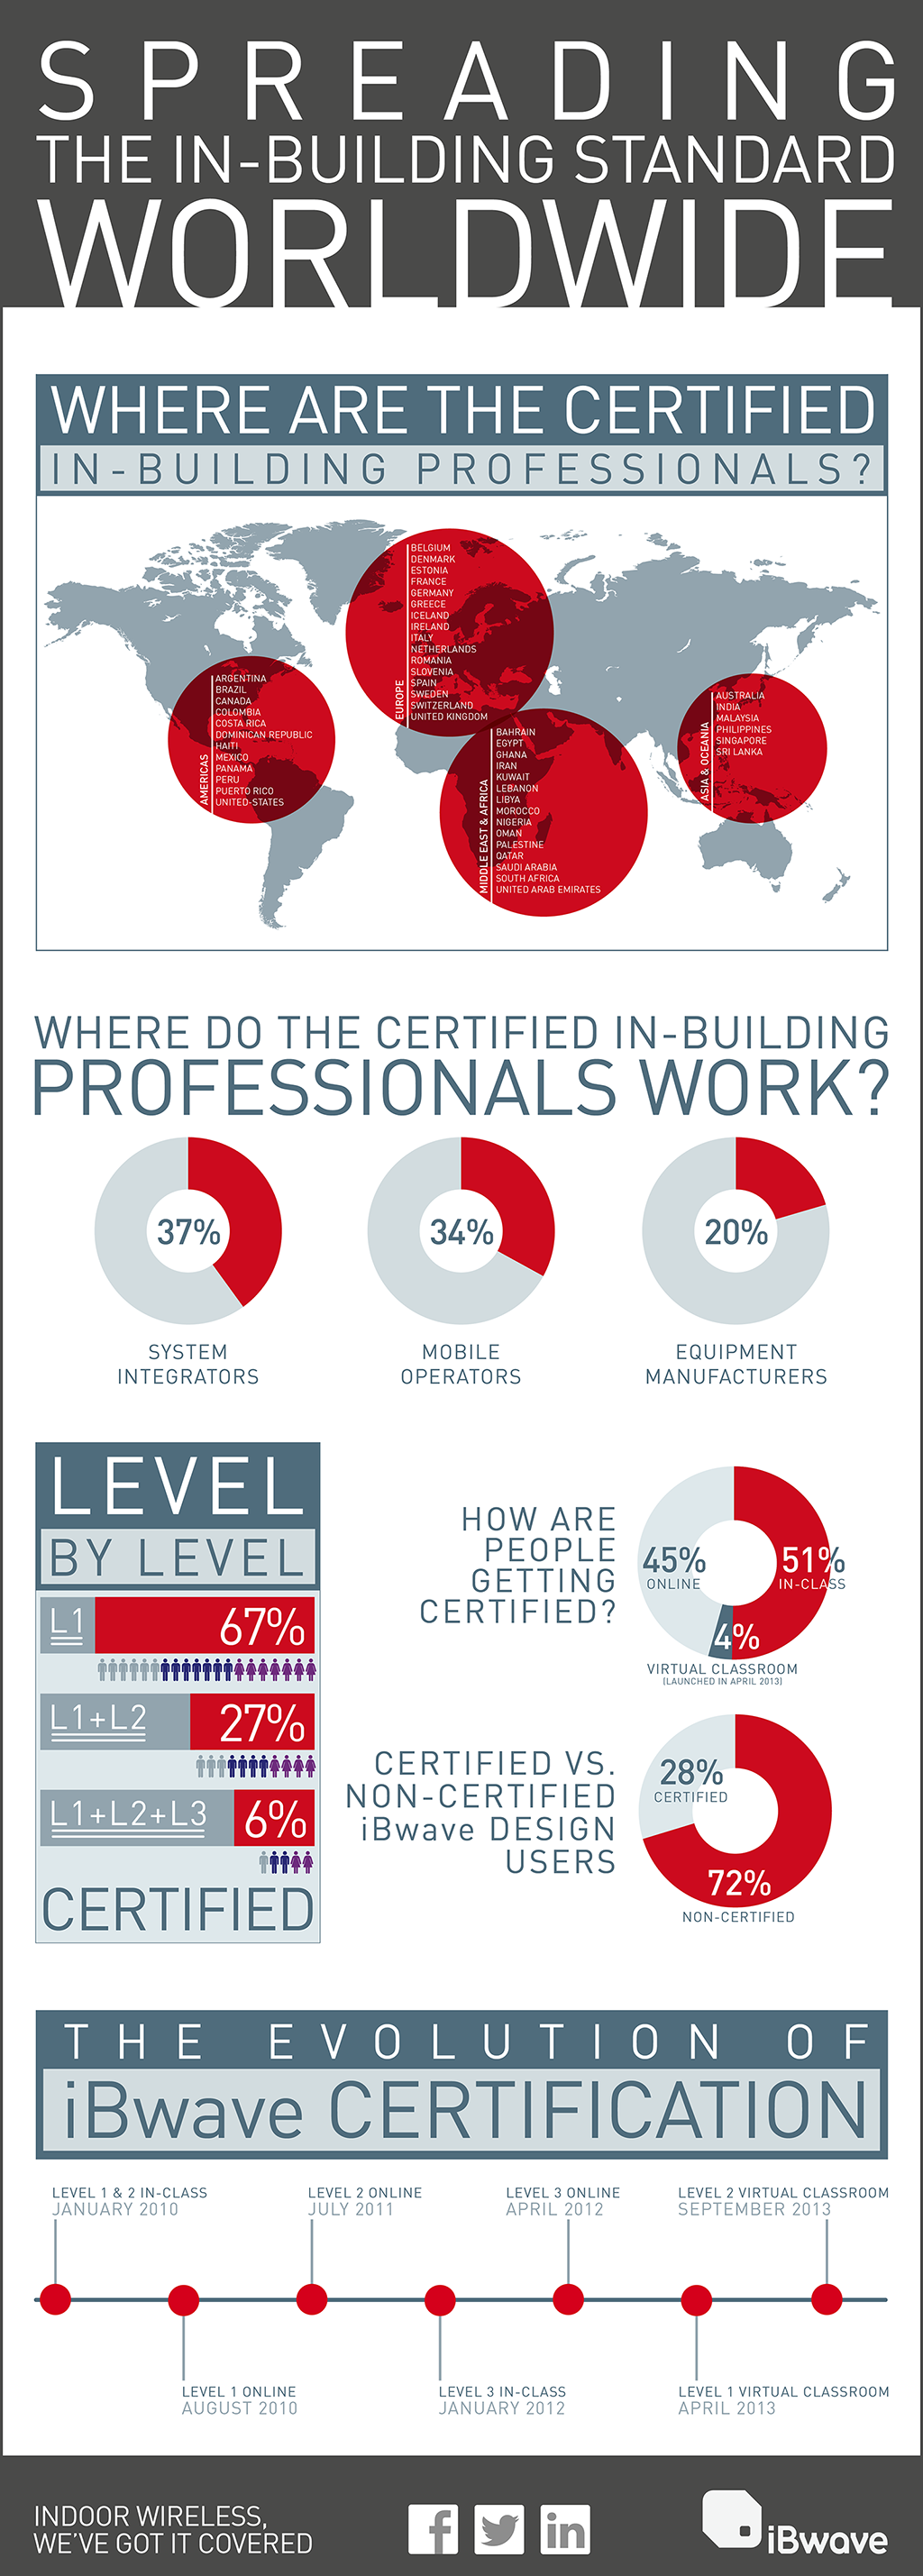 iBwave_Certification_infographic